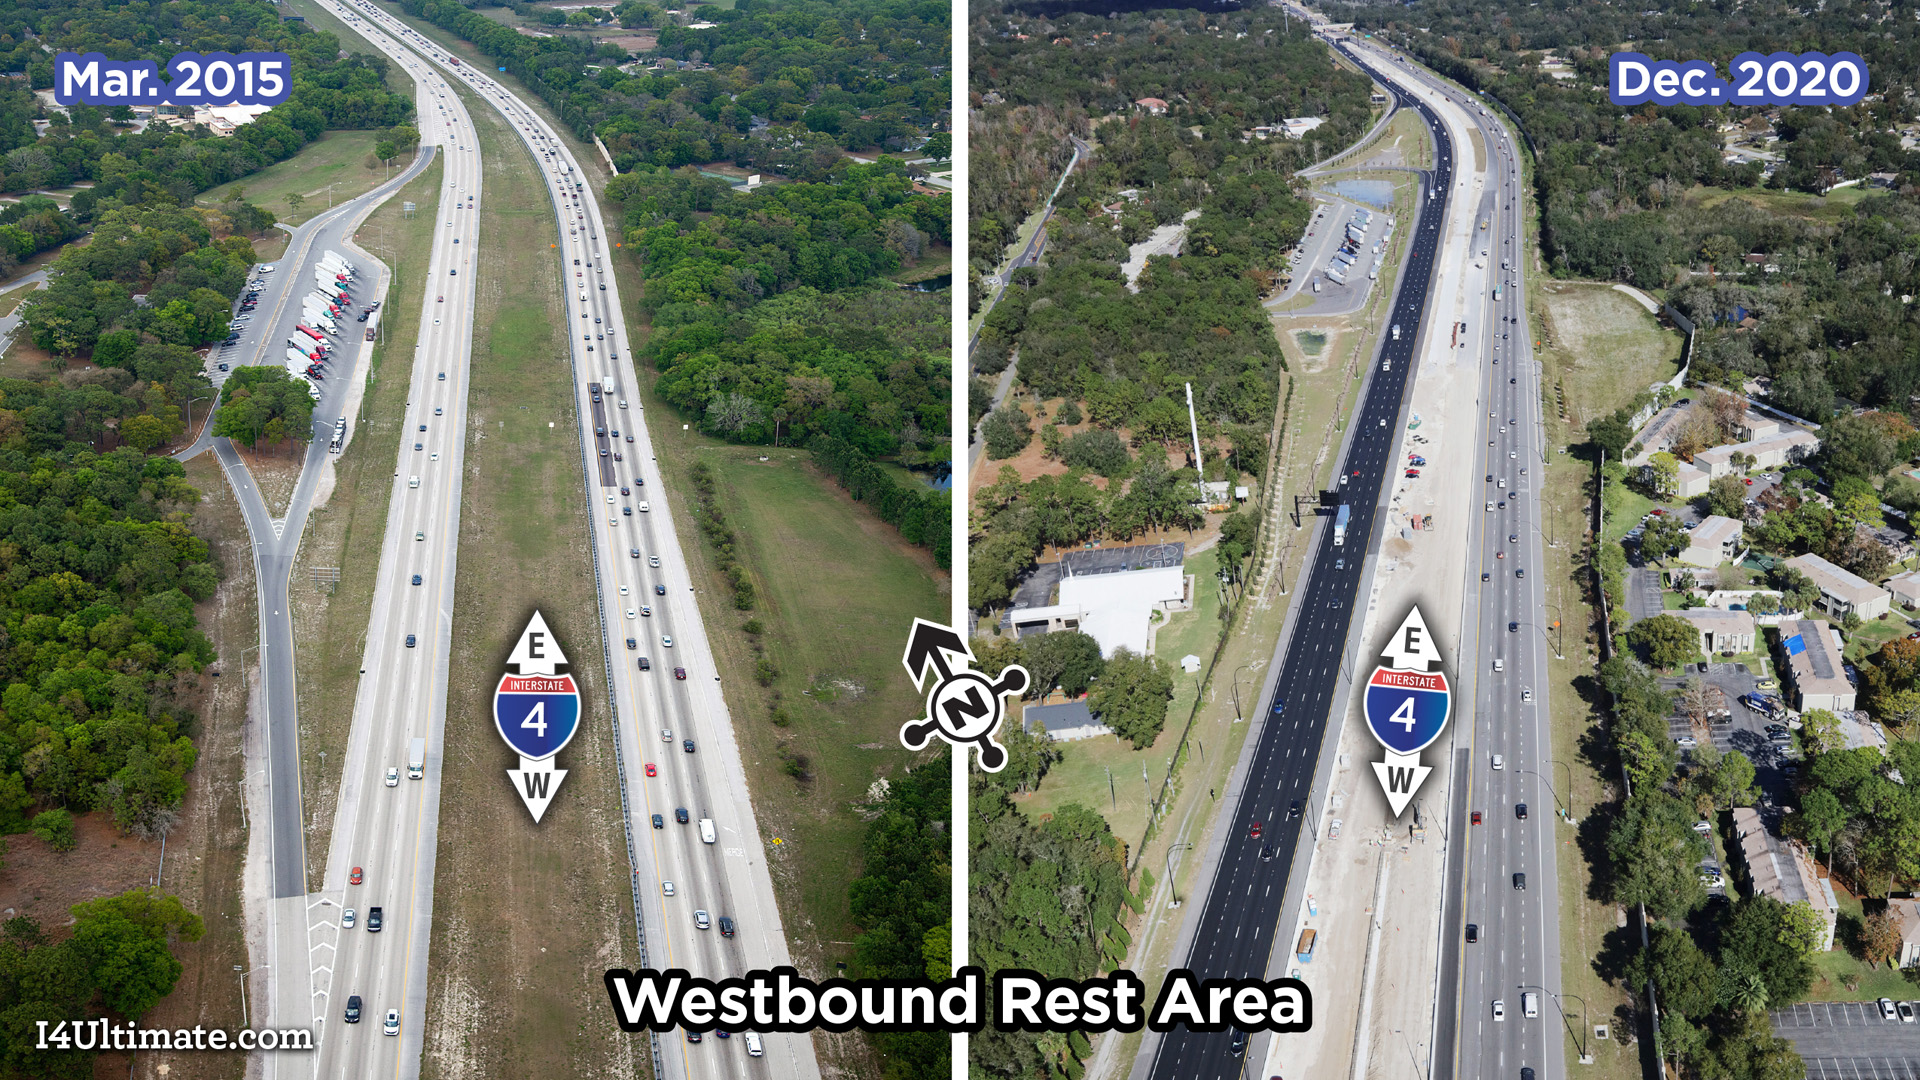 4738-I4Ultimate-GUL-campaign-images-20210212-24-Westbound-Rest-Area